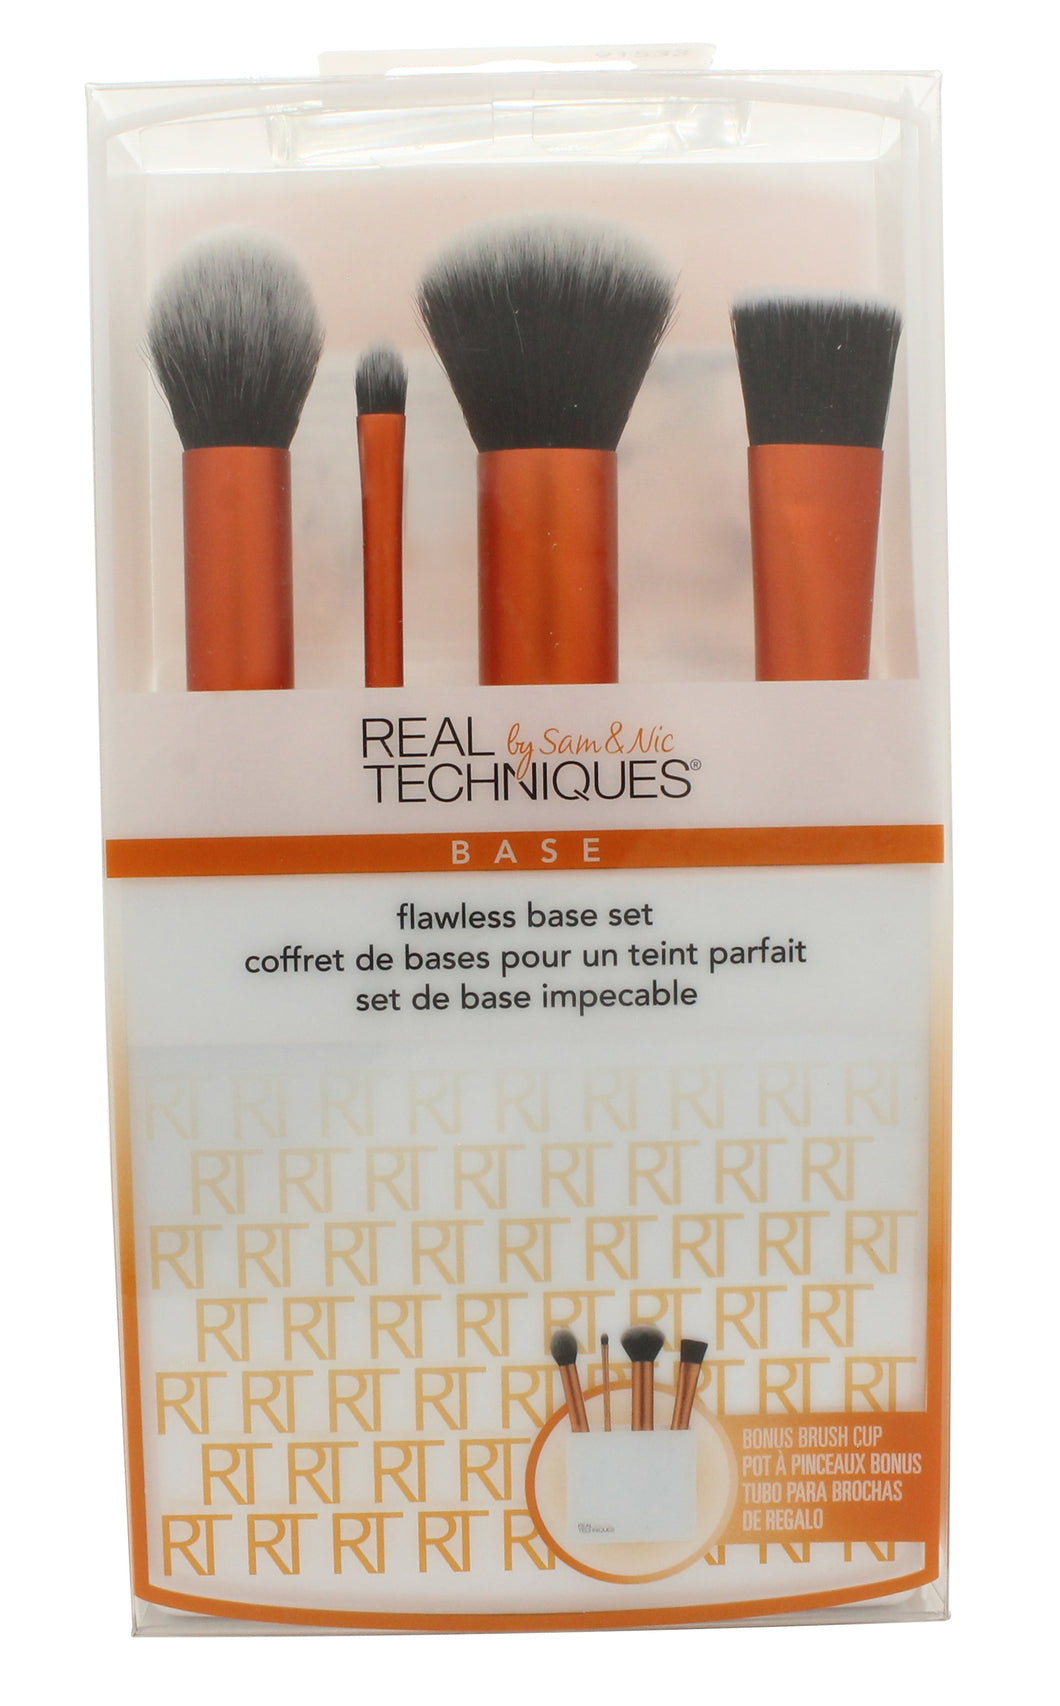 Real Techniques Flawless Base Gift Set 5 Pieces (1 x Contour Brush 1 x Detailer Brush 1 x Buffing Brush 1 x Square Foundation Brush 1 x Brush Cup Holder)